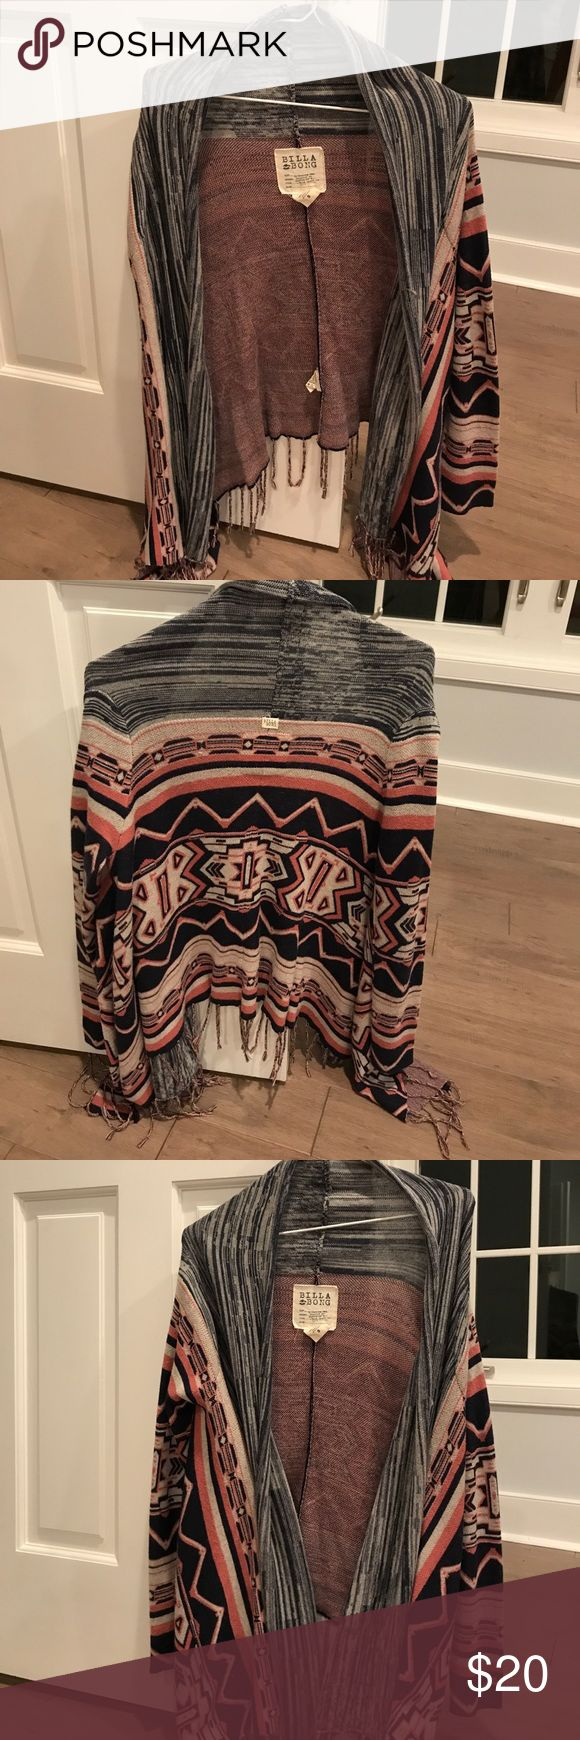 Billabong tribal print cardigan Pink white and blue sweater. Super comfy only worn a couple of times Billabong Sweaters Cardigans